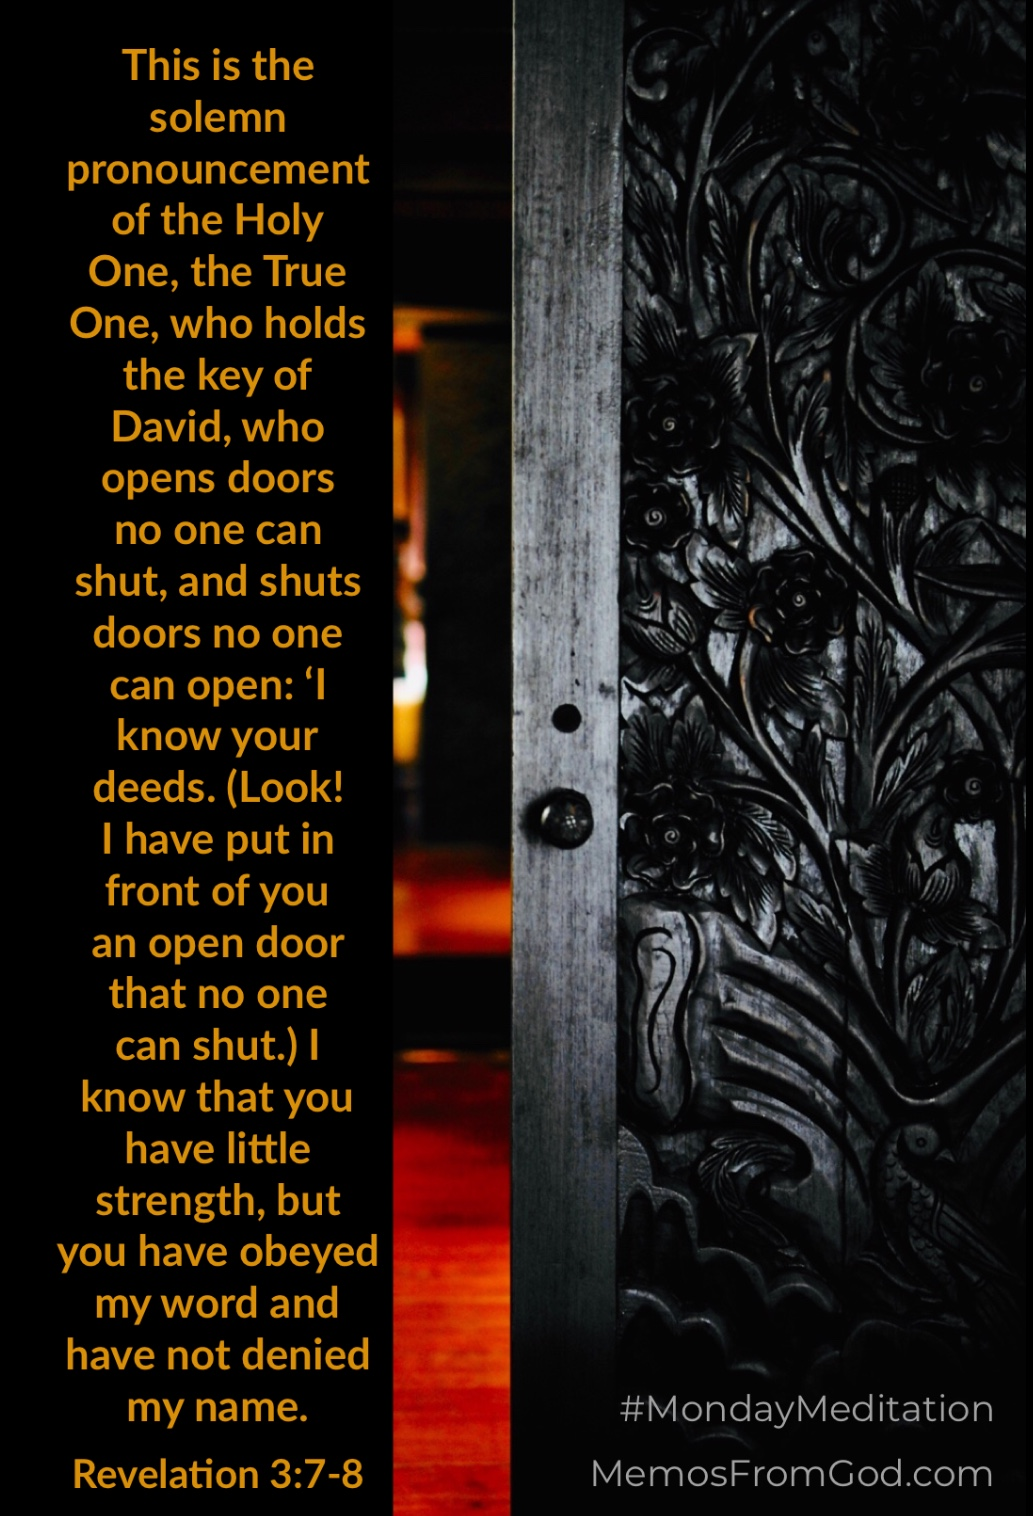 This is the solemn pronouncement of the Holy One, the True One, who holds the key of David, who opens doors no one can shut, and shuts doors no one can open: 'I know your deeds. (Look! I have put in front of you an open door that no one can shut.) I know that you have little strength, but you have obeyed my word and have not denied my name. Revelation 3:7-8